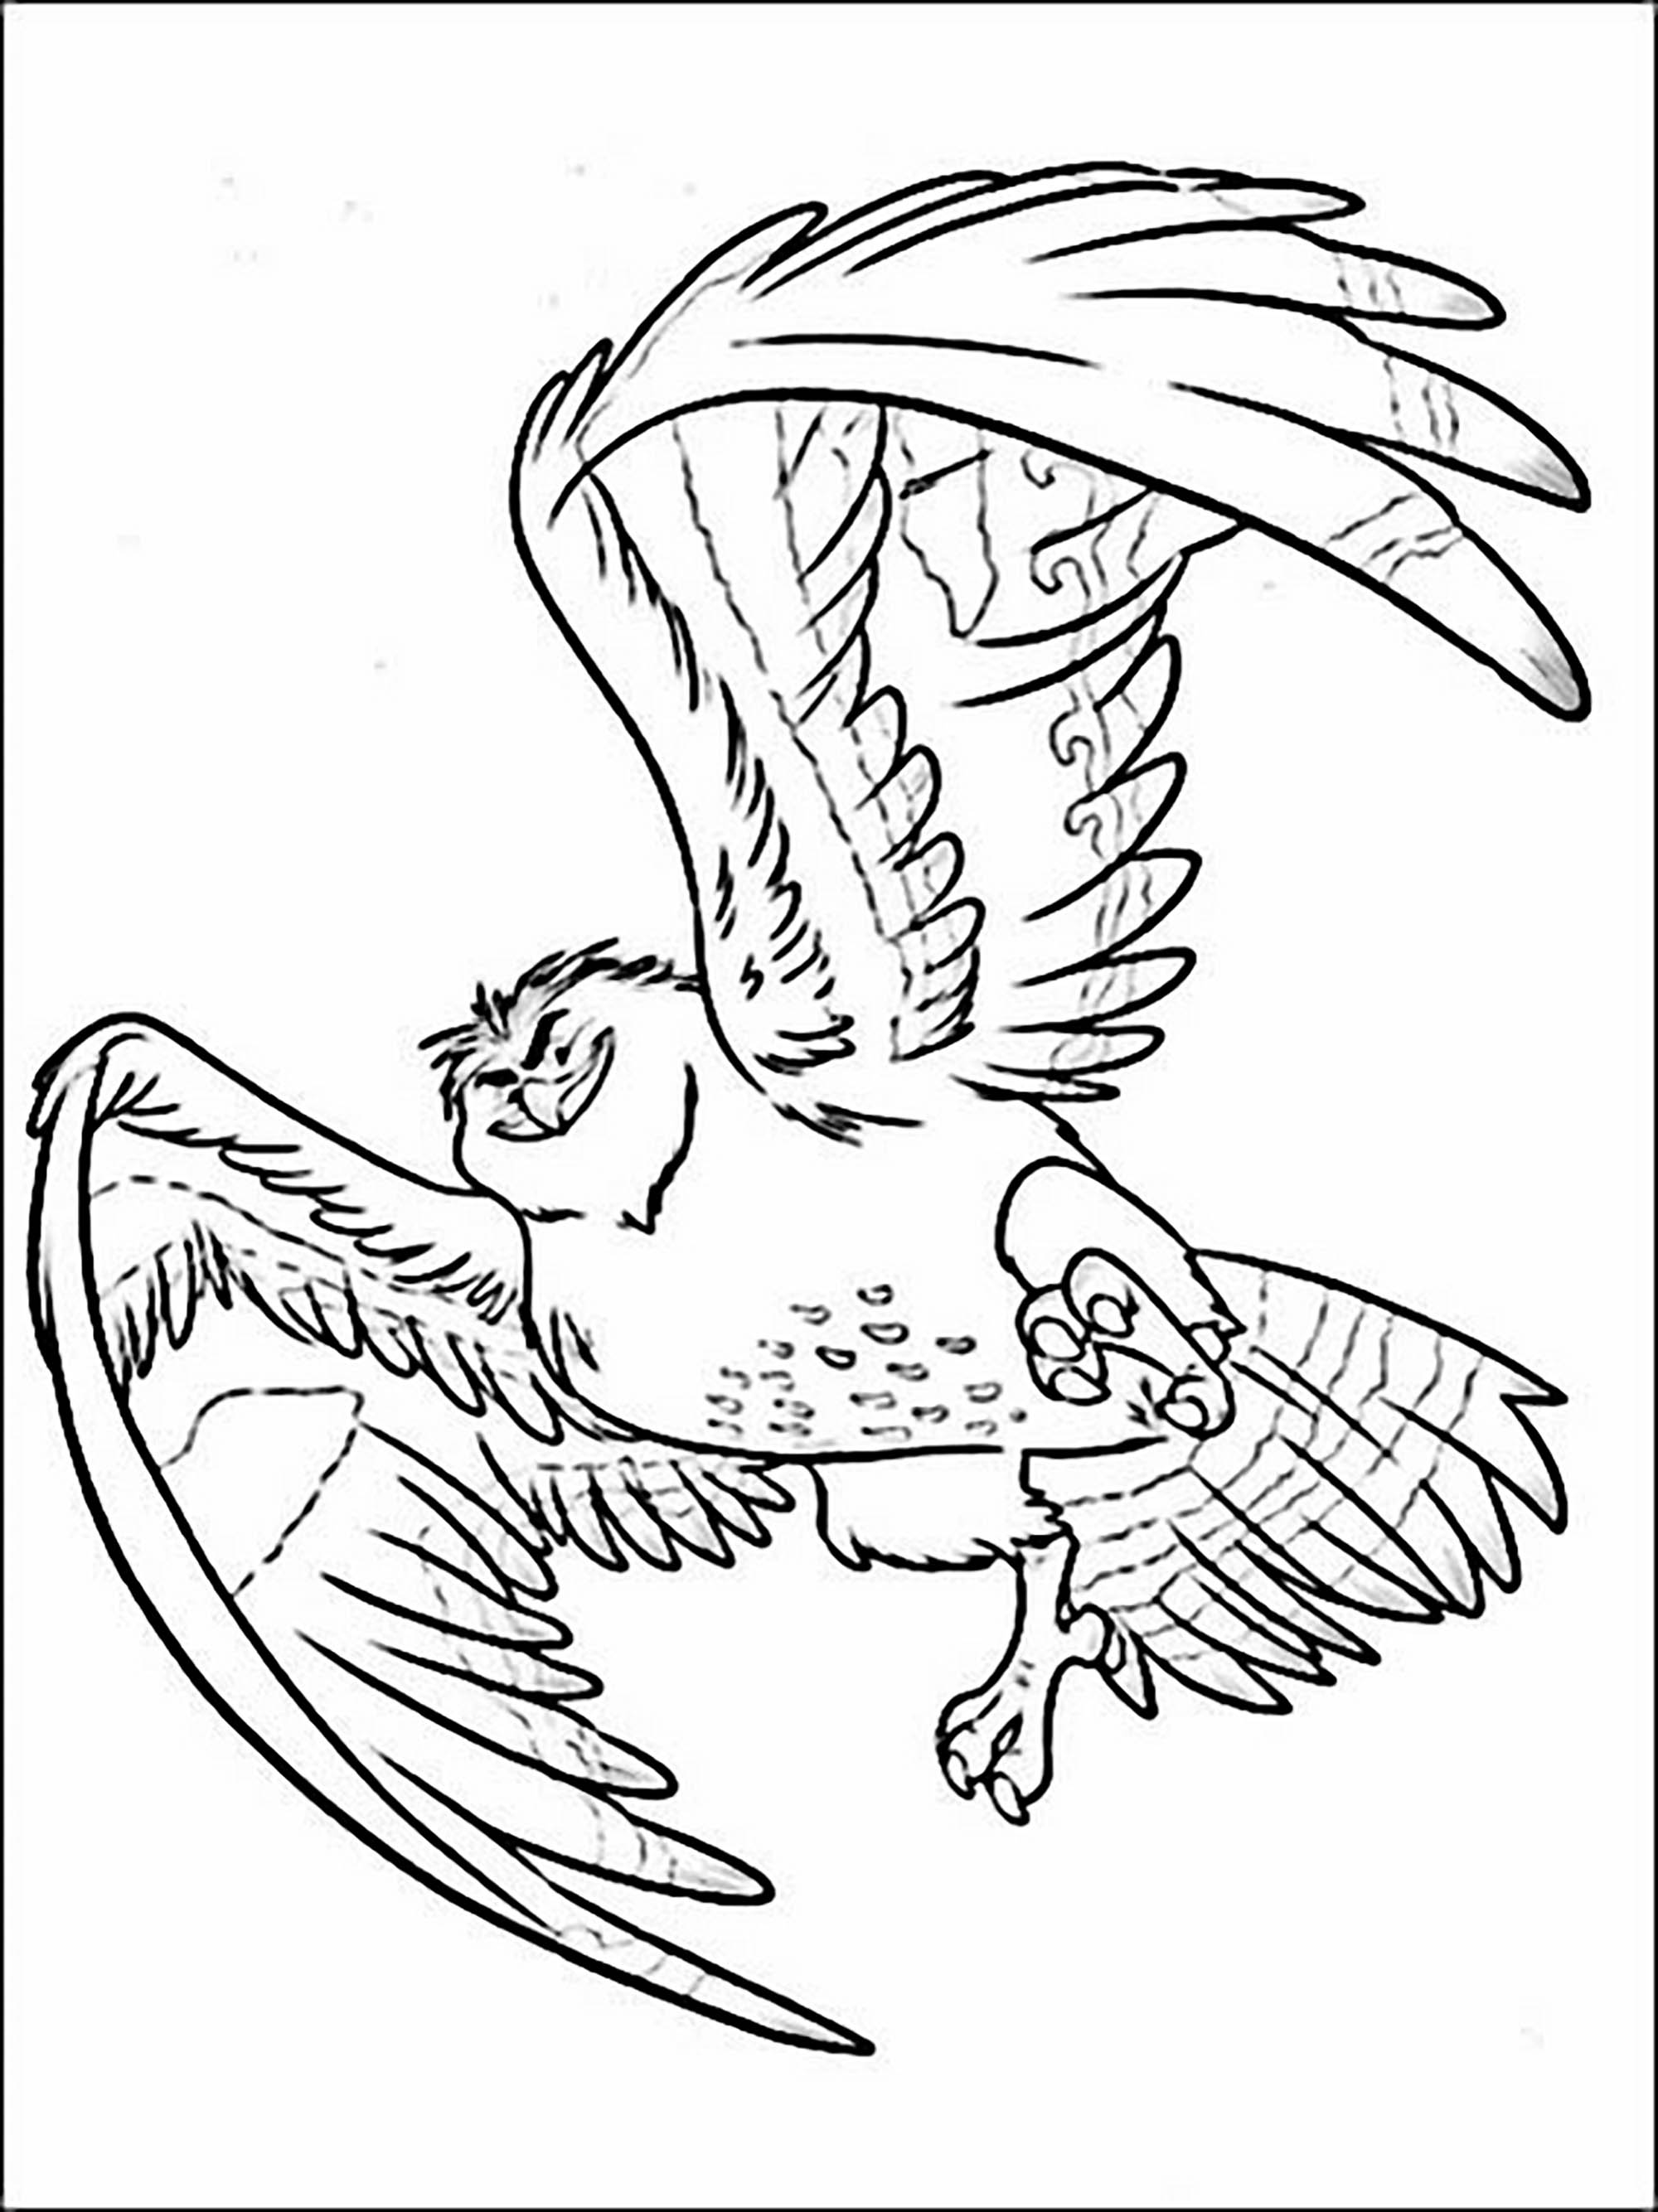 Simple Moana coloring page to download for free : Eagle